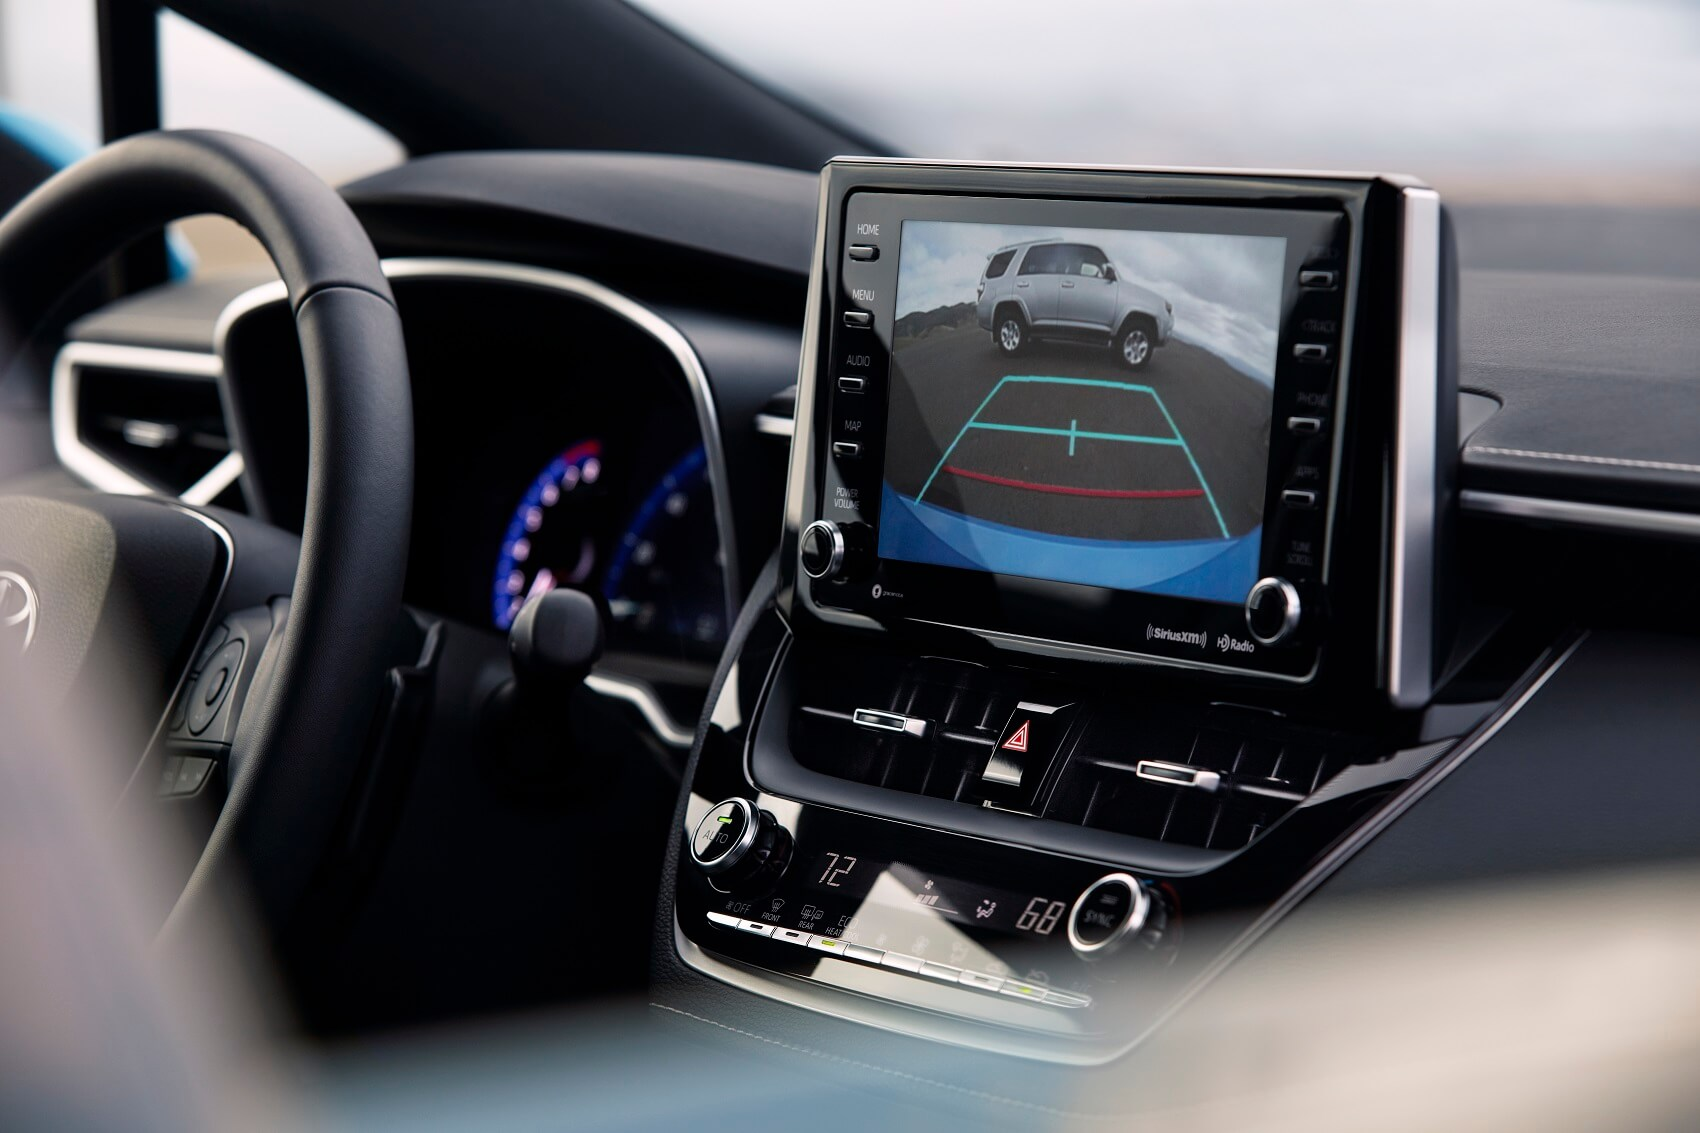 2020 Toyota Corolla Hatchback Safety Back-Up Camera